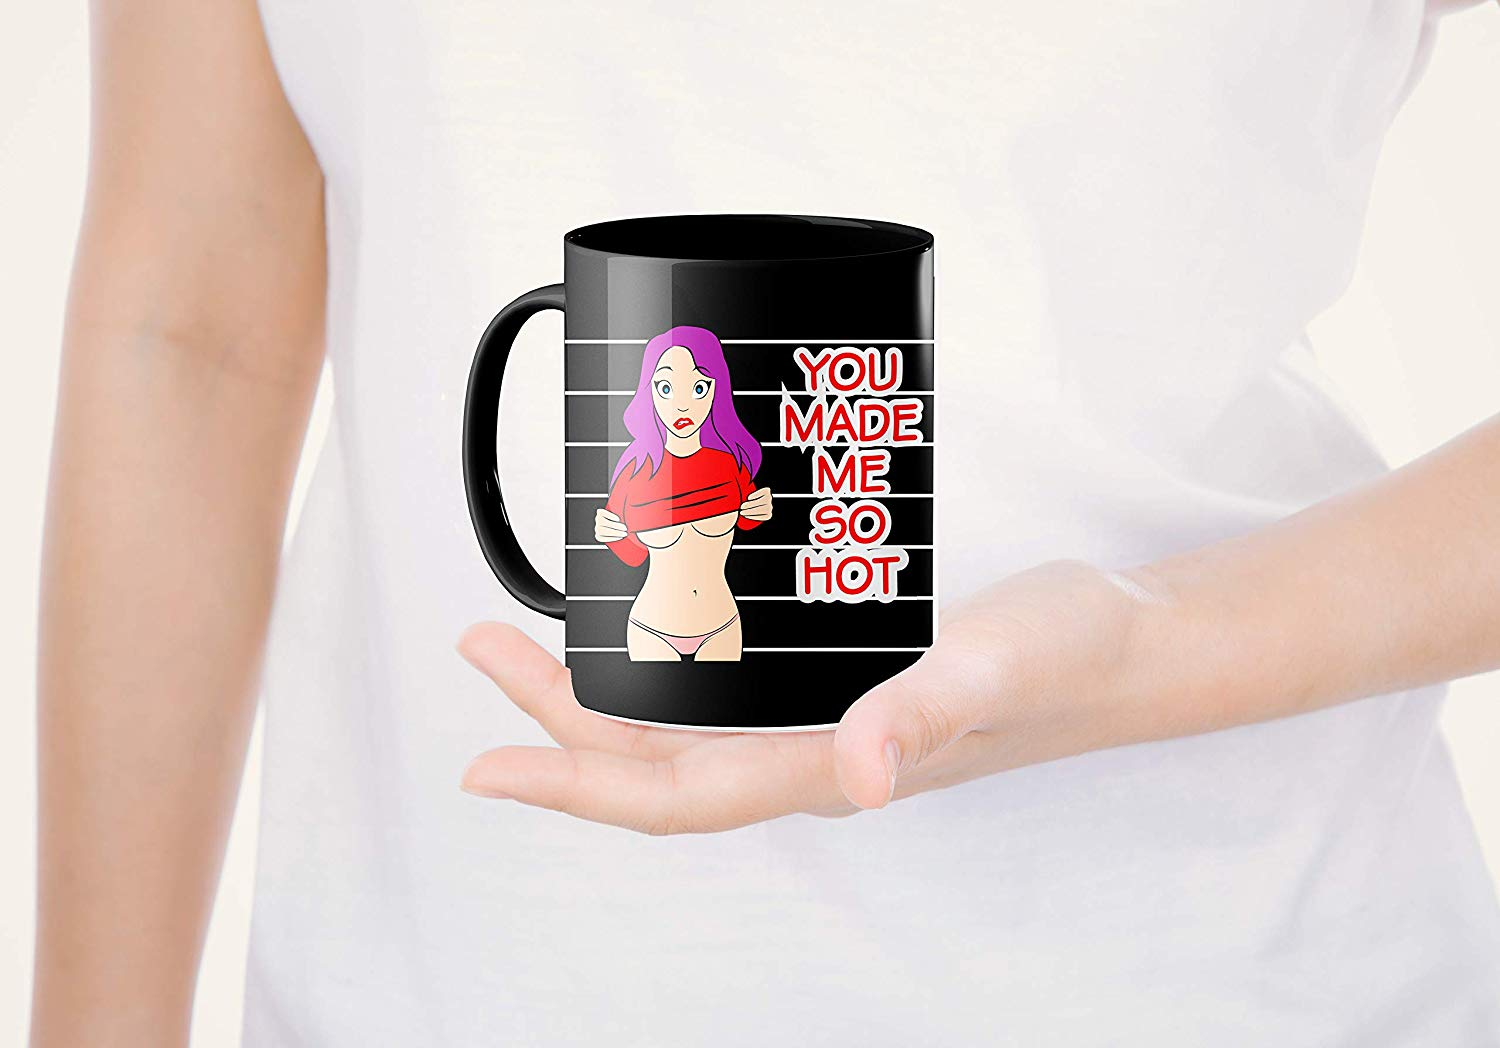 Heat Sensitive Color Changing Coffee Mug Funny Coffee Cup Hot Girl Design Funny Gift Idea B07D21CPTQ 6